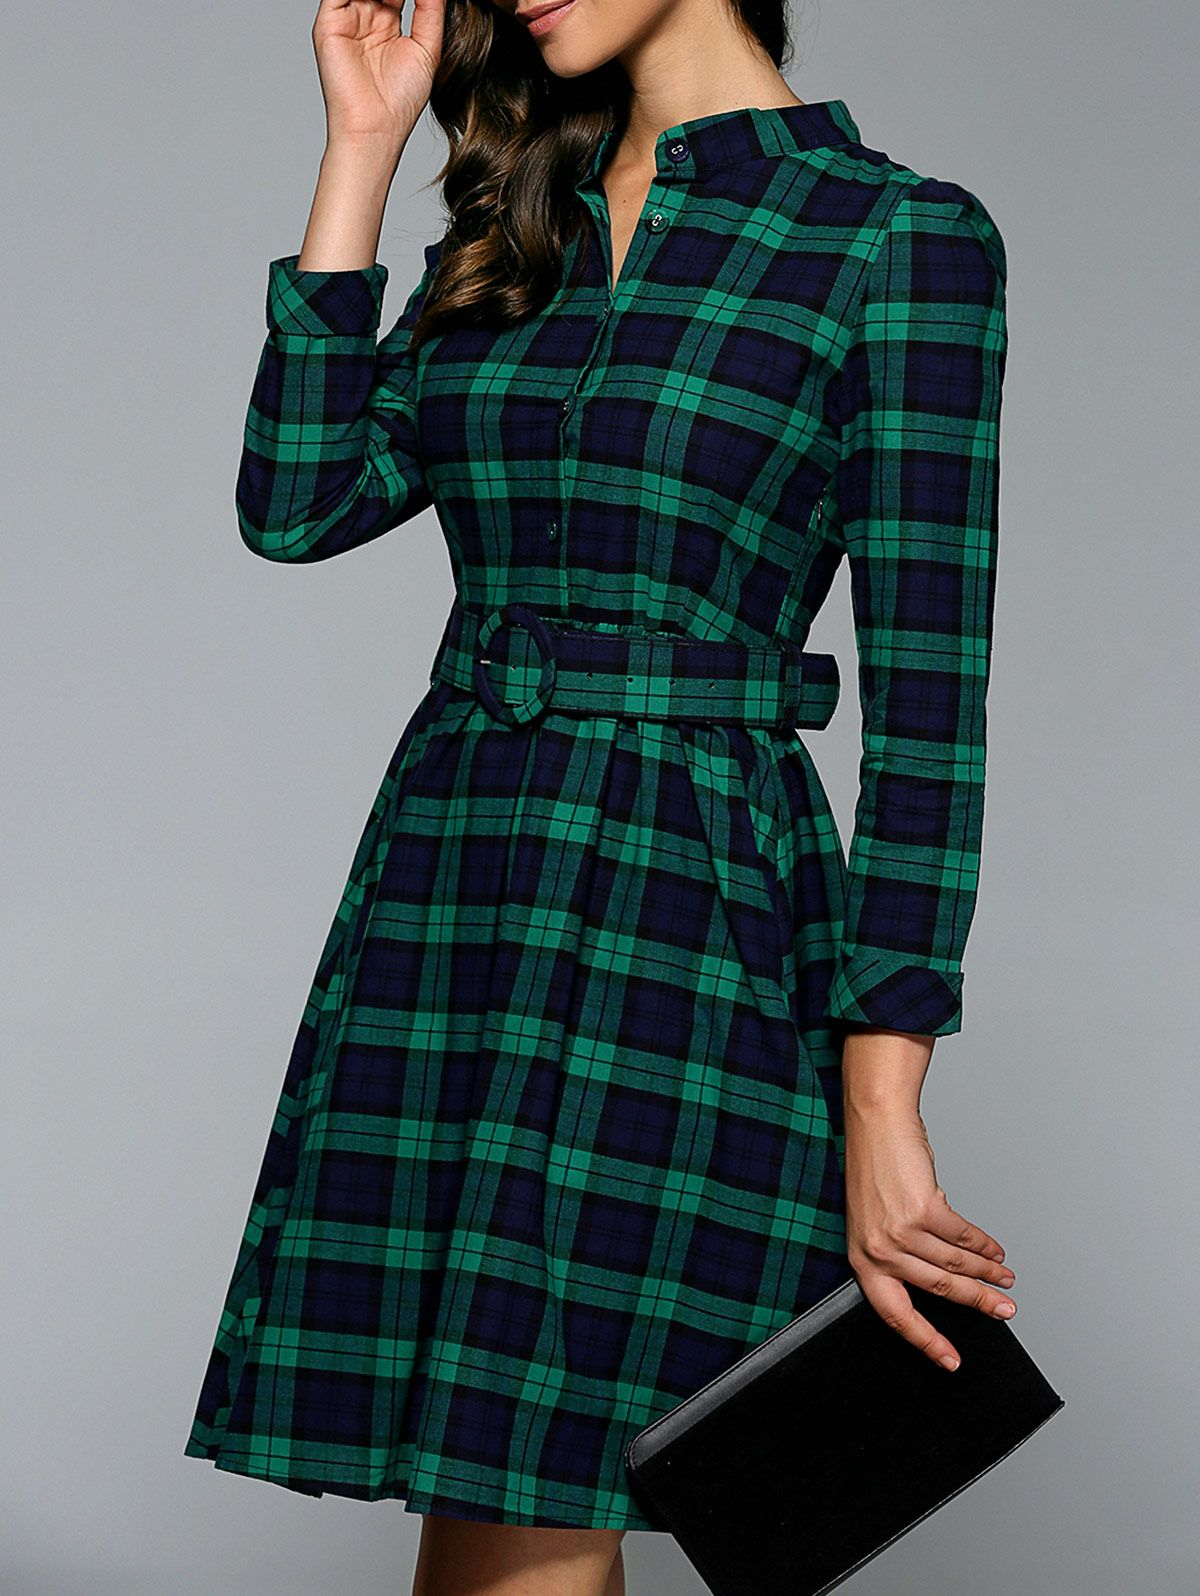 128dbb99dfc Stand Collar Plaid Dress